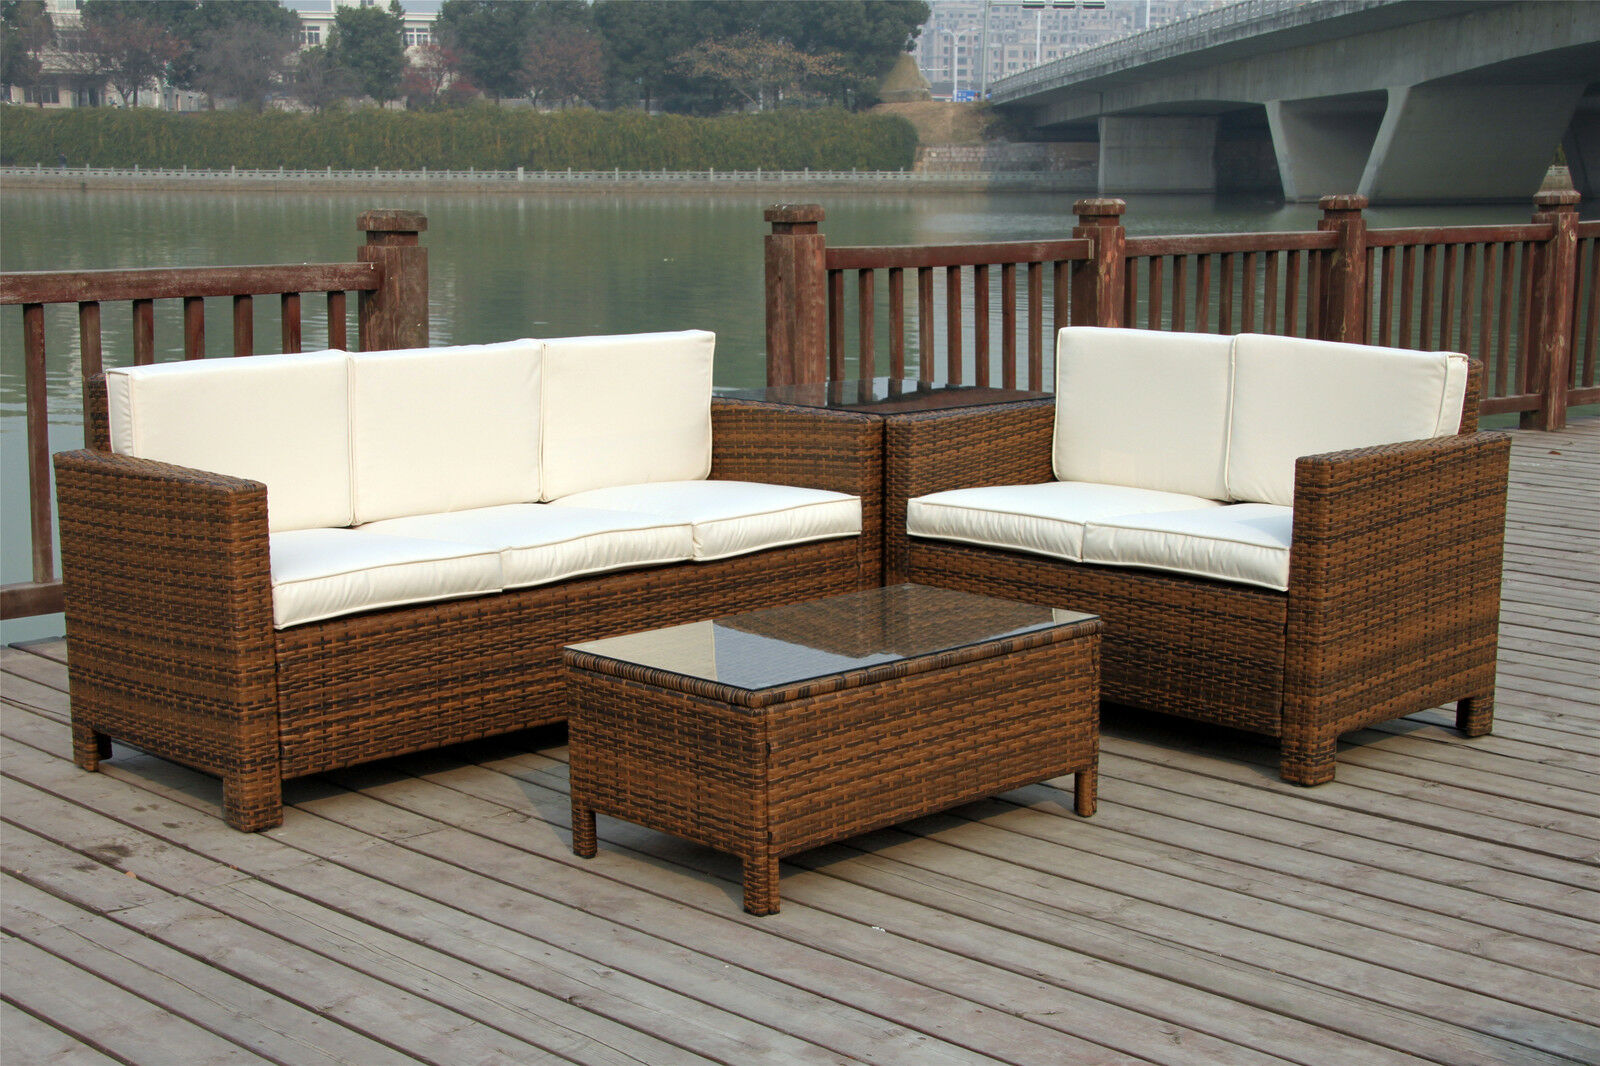 rattan outdoor sofa sets uk covers amazon garden wicker patio furniture conservatory